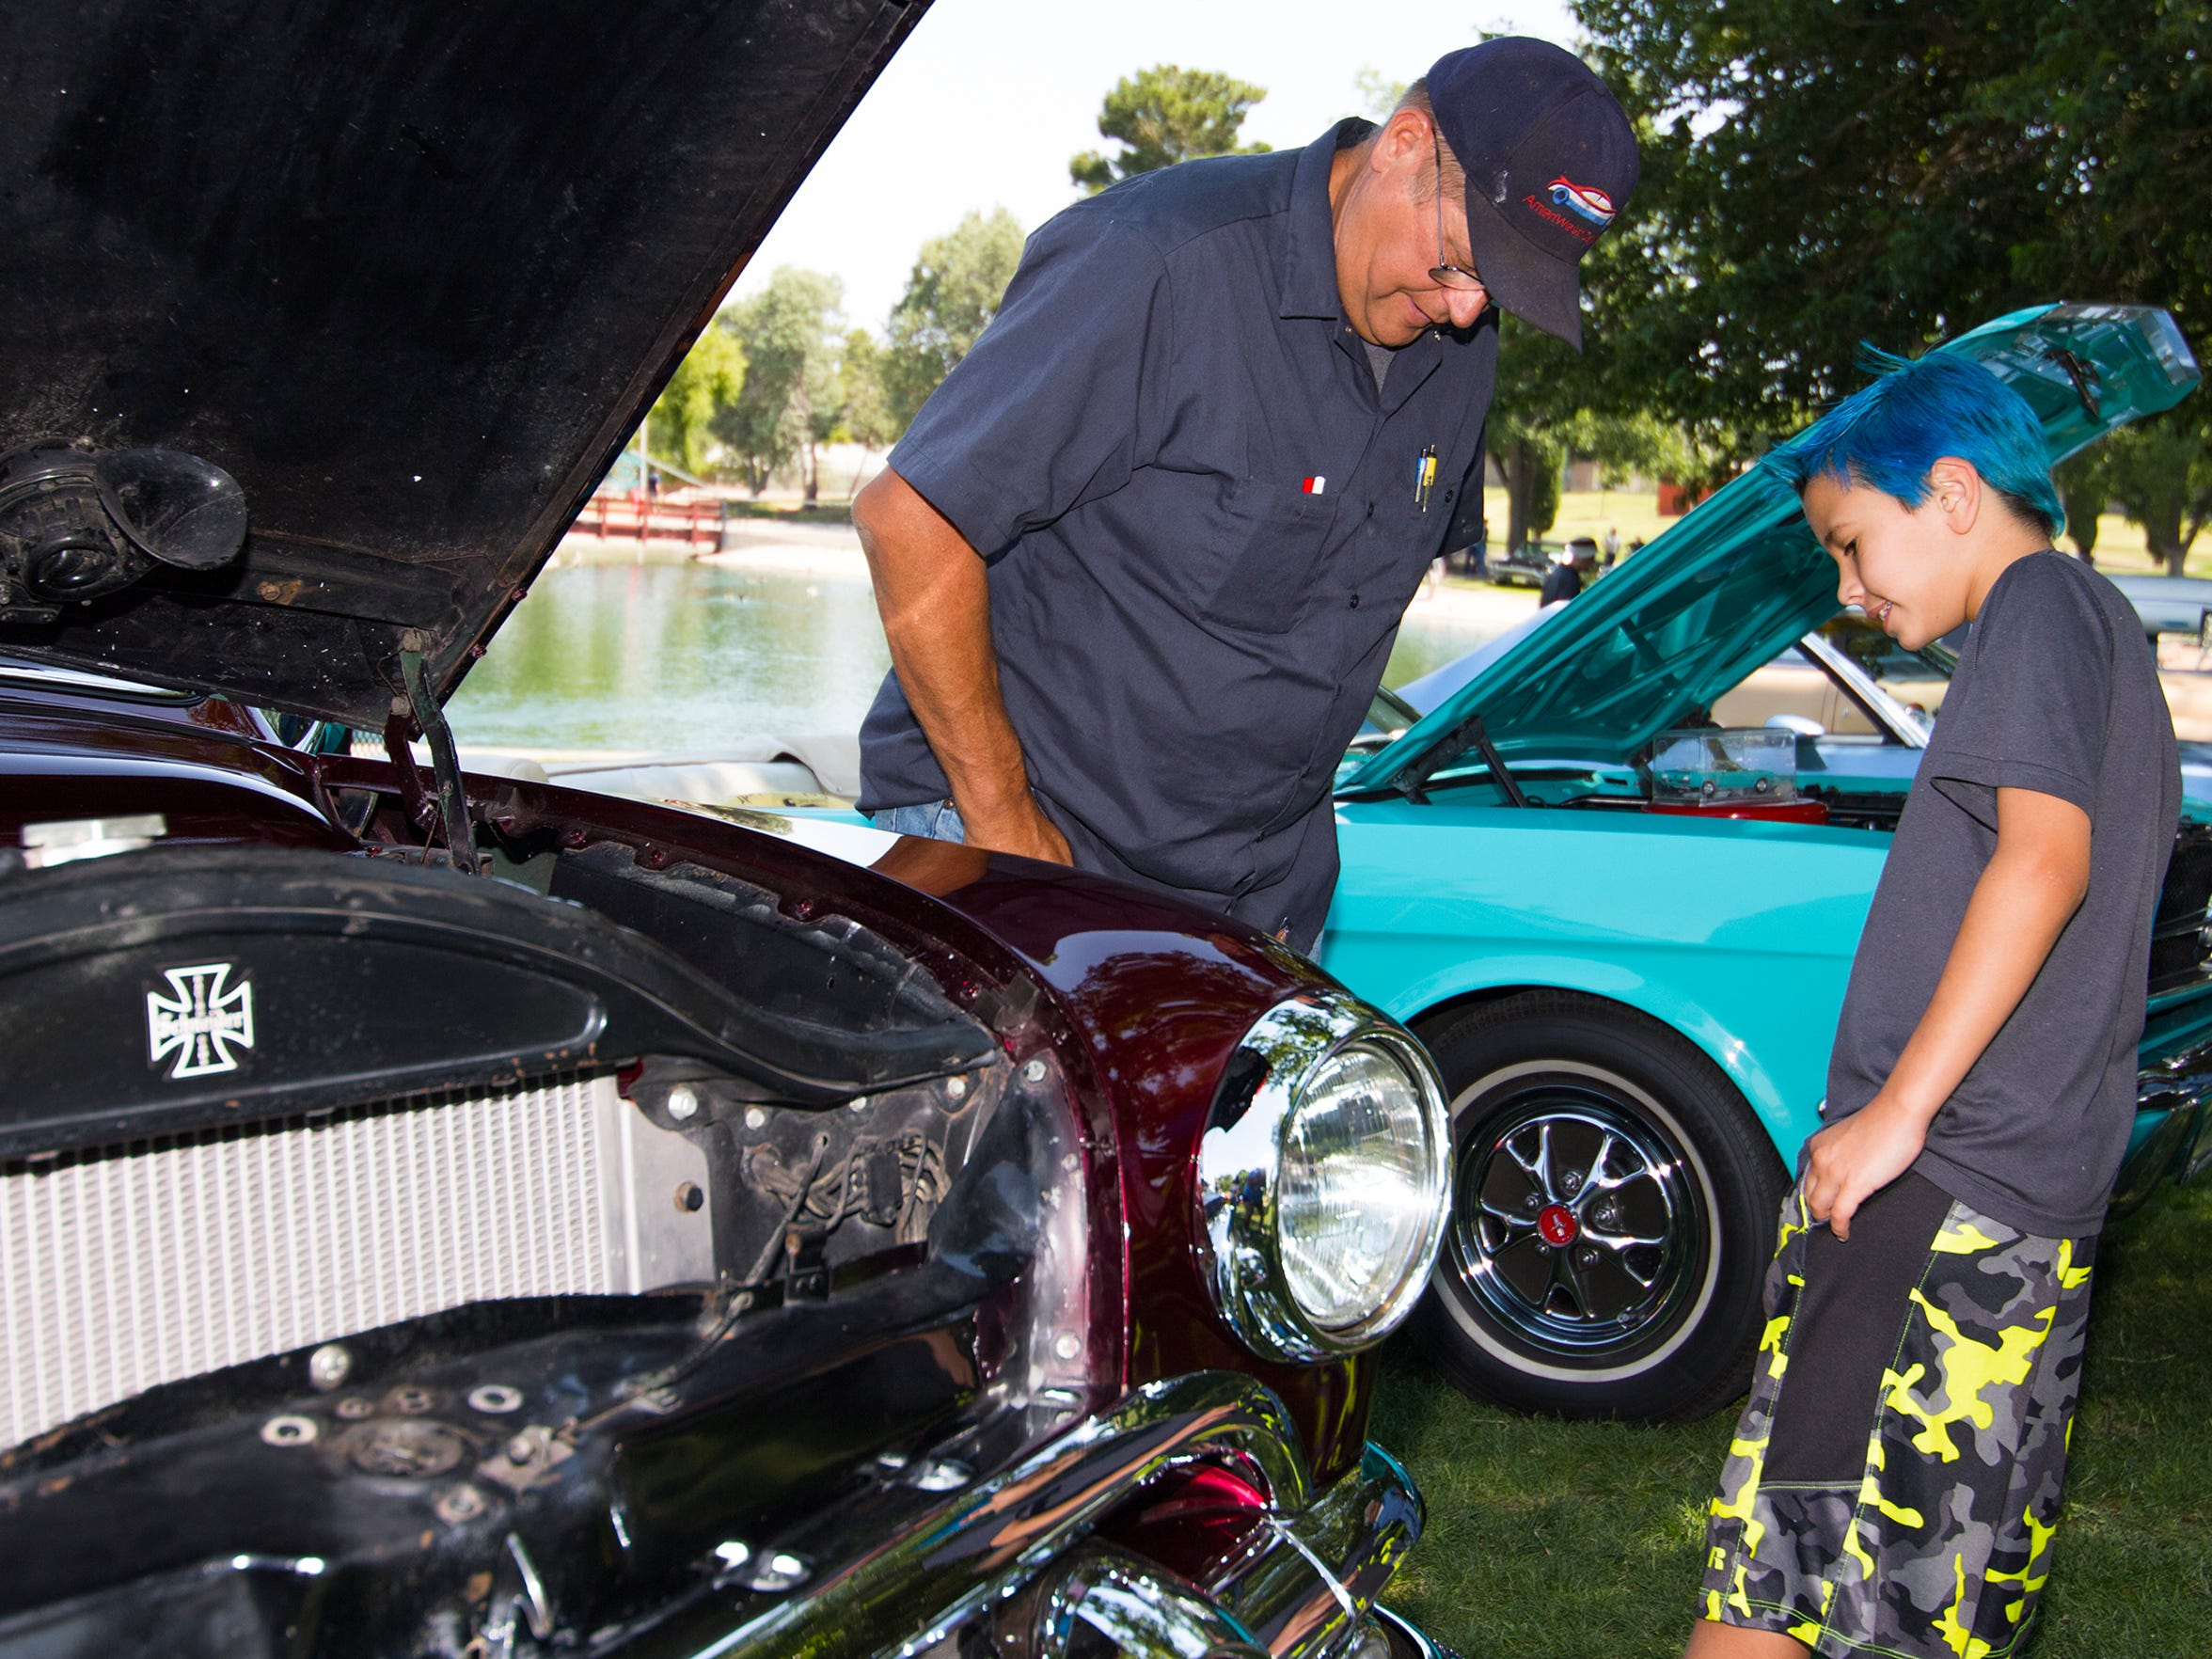 The annual Kars for Kids car show is free to attend. Proceeds from registrations and food benefit Jardín de los Niños. (Pictured) Ted McConaughey and his son Ryan, 10, take a look at the lines of a custom car during the 2016 Kiwanis Kars for Kids Car Show.